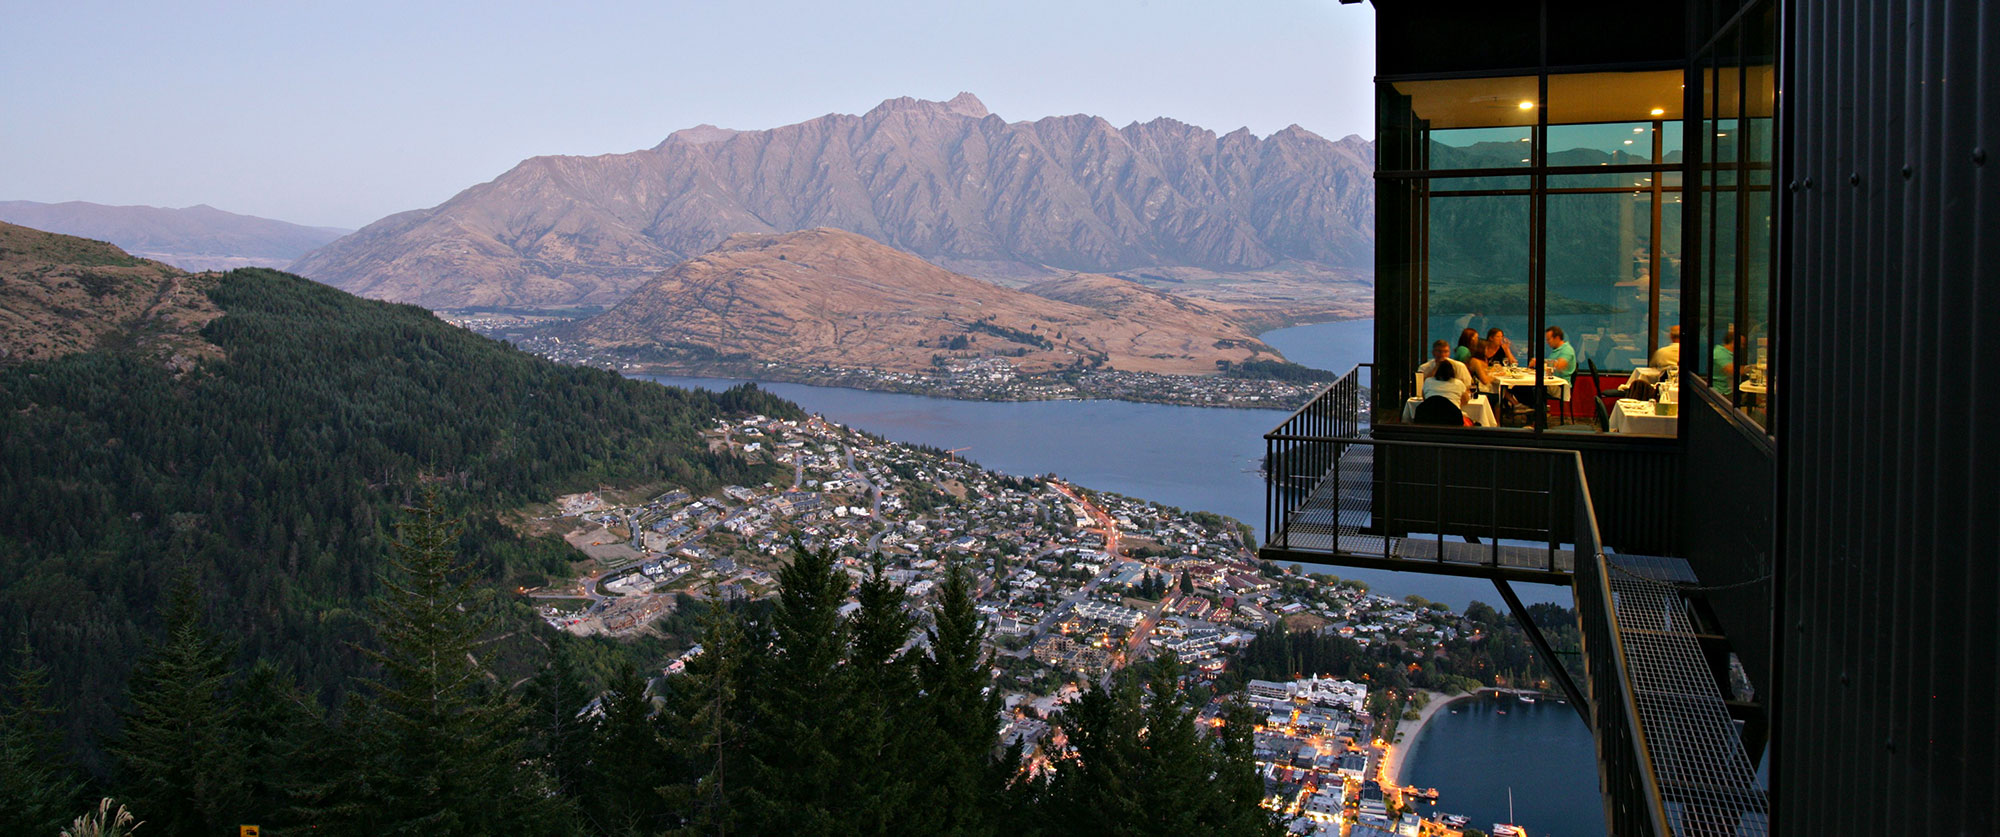 Best New Zealand Vacation - Must see Queenstown - Adventure - Highlights - New Zealand Higlights